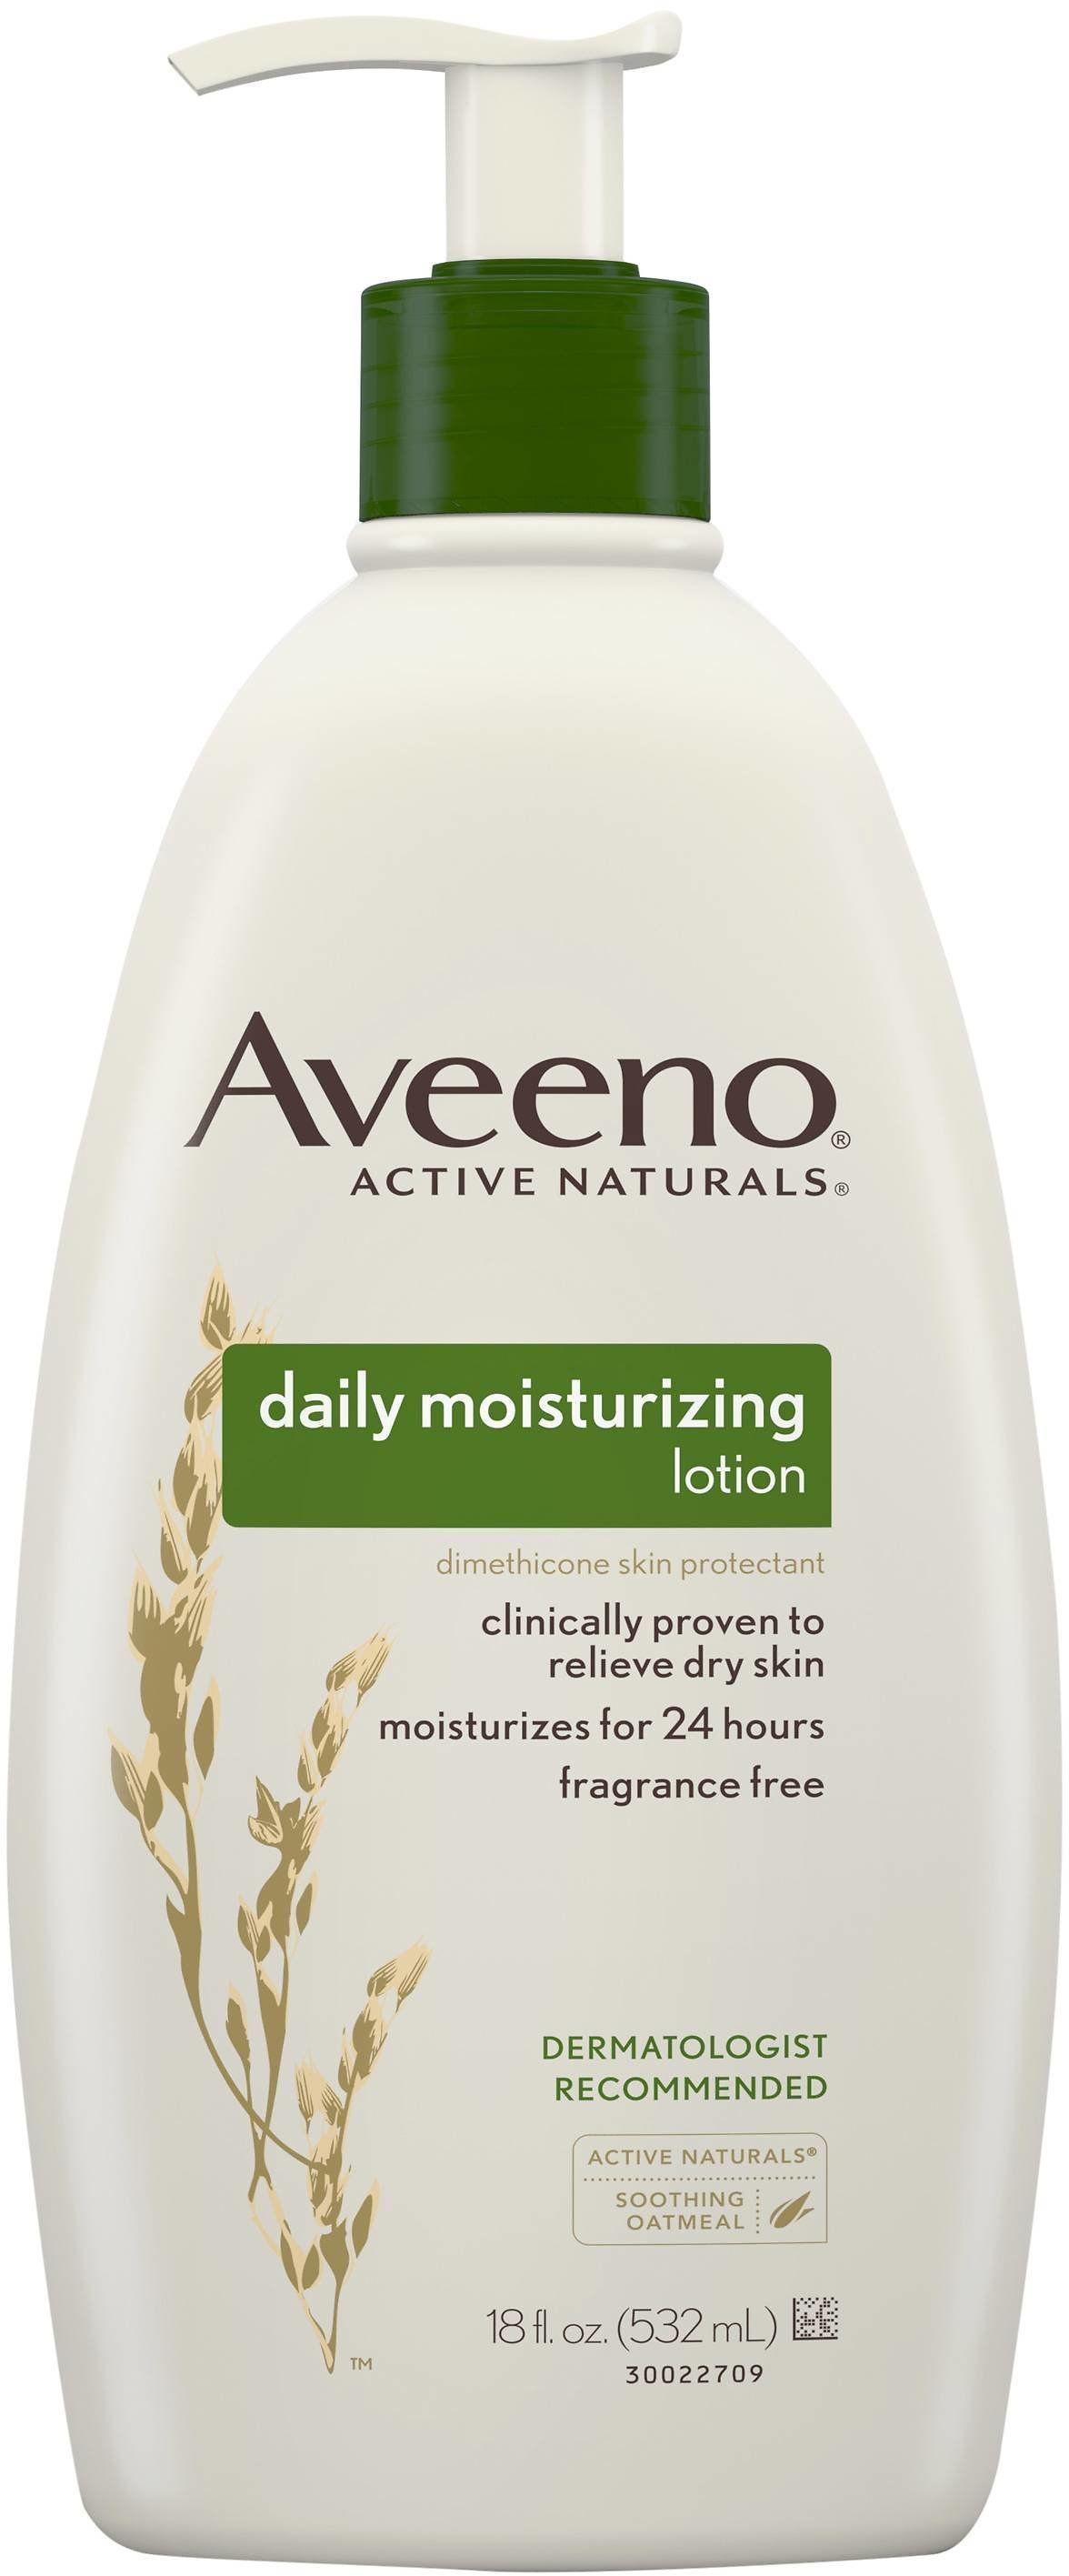 photo about Aveeno Coupon Printable referred to as 3) Aveeno Day-to-day Moisturizing Lotion For Dry Pores and skin - 18 Fl Oz